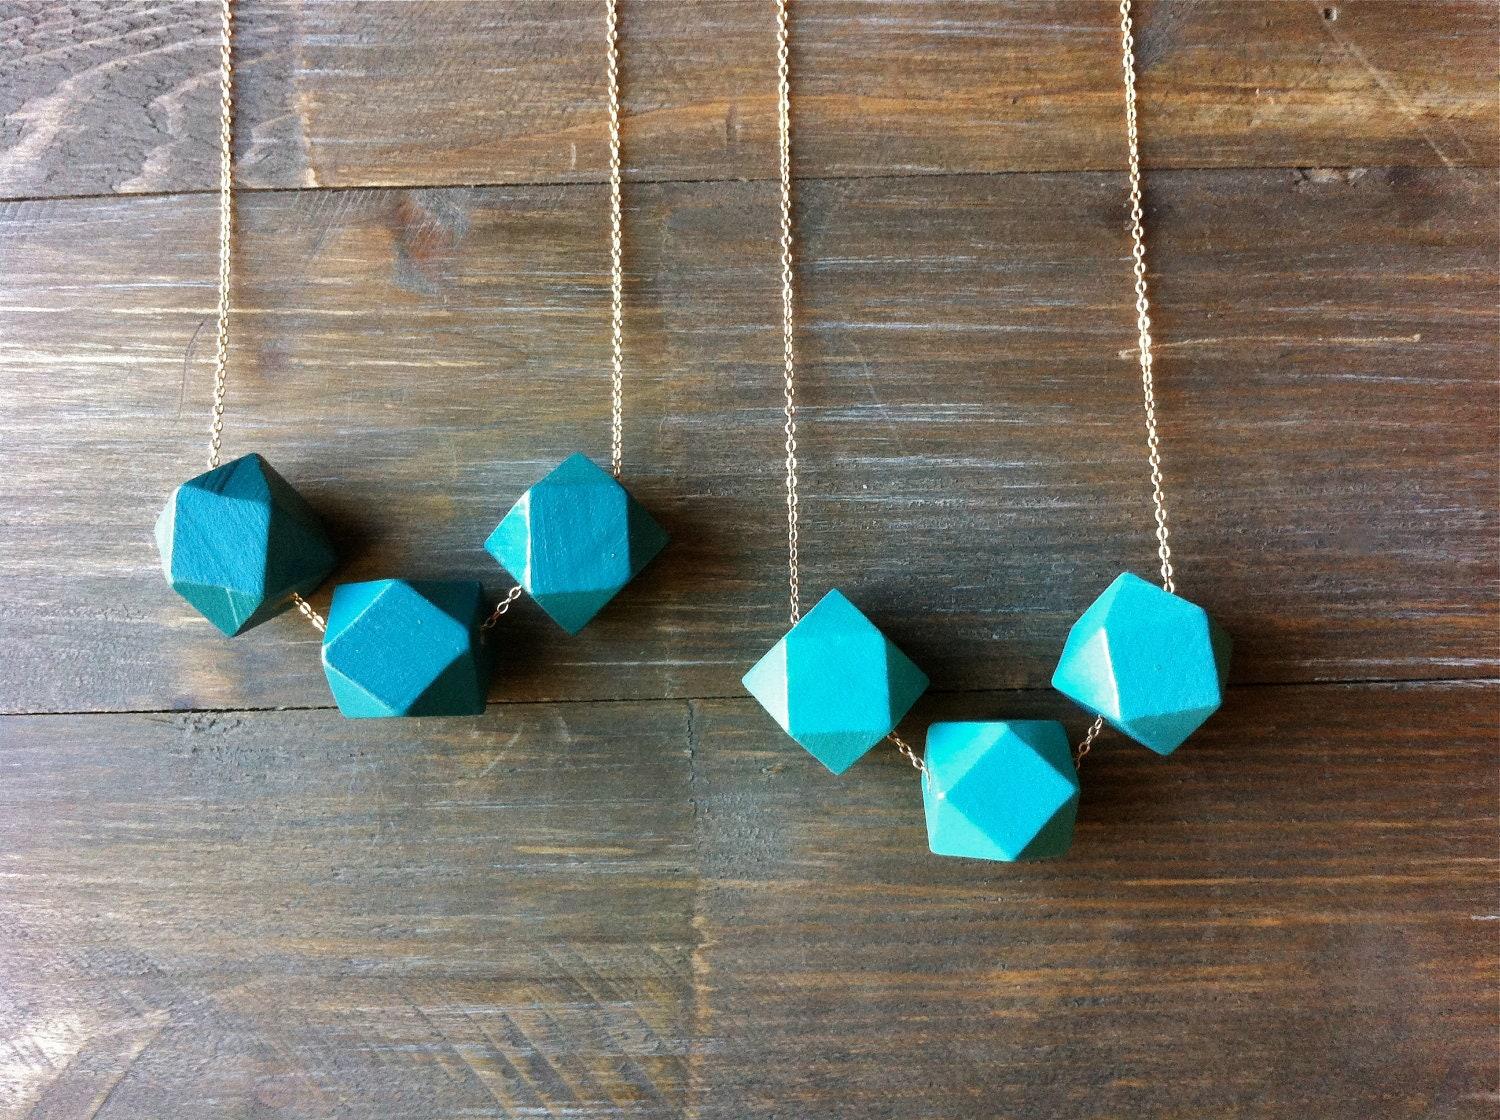 Midnight Teal Geometric Wood Necklace / Modern Blue Minimalist Jewelry / Rustic Boho Style - FableAndLore